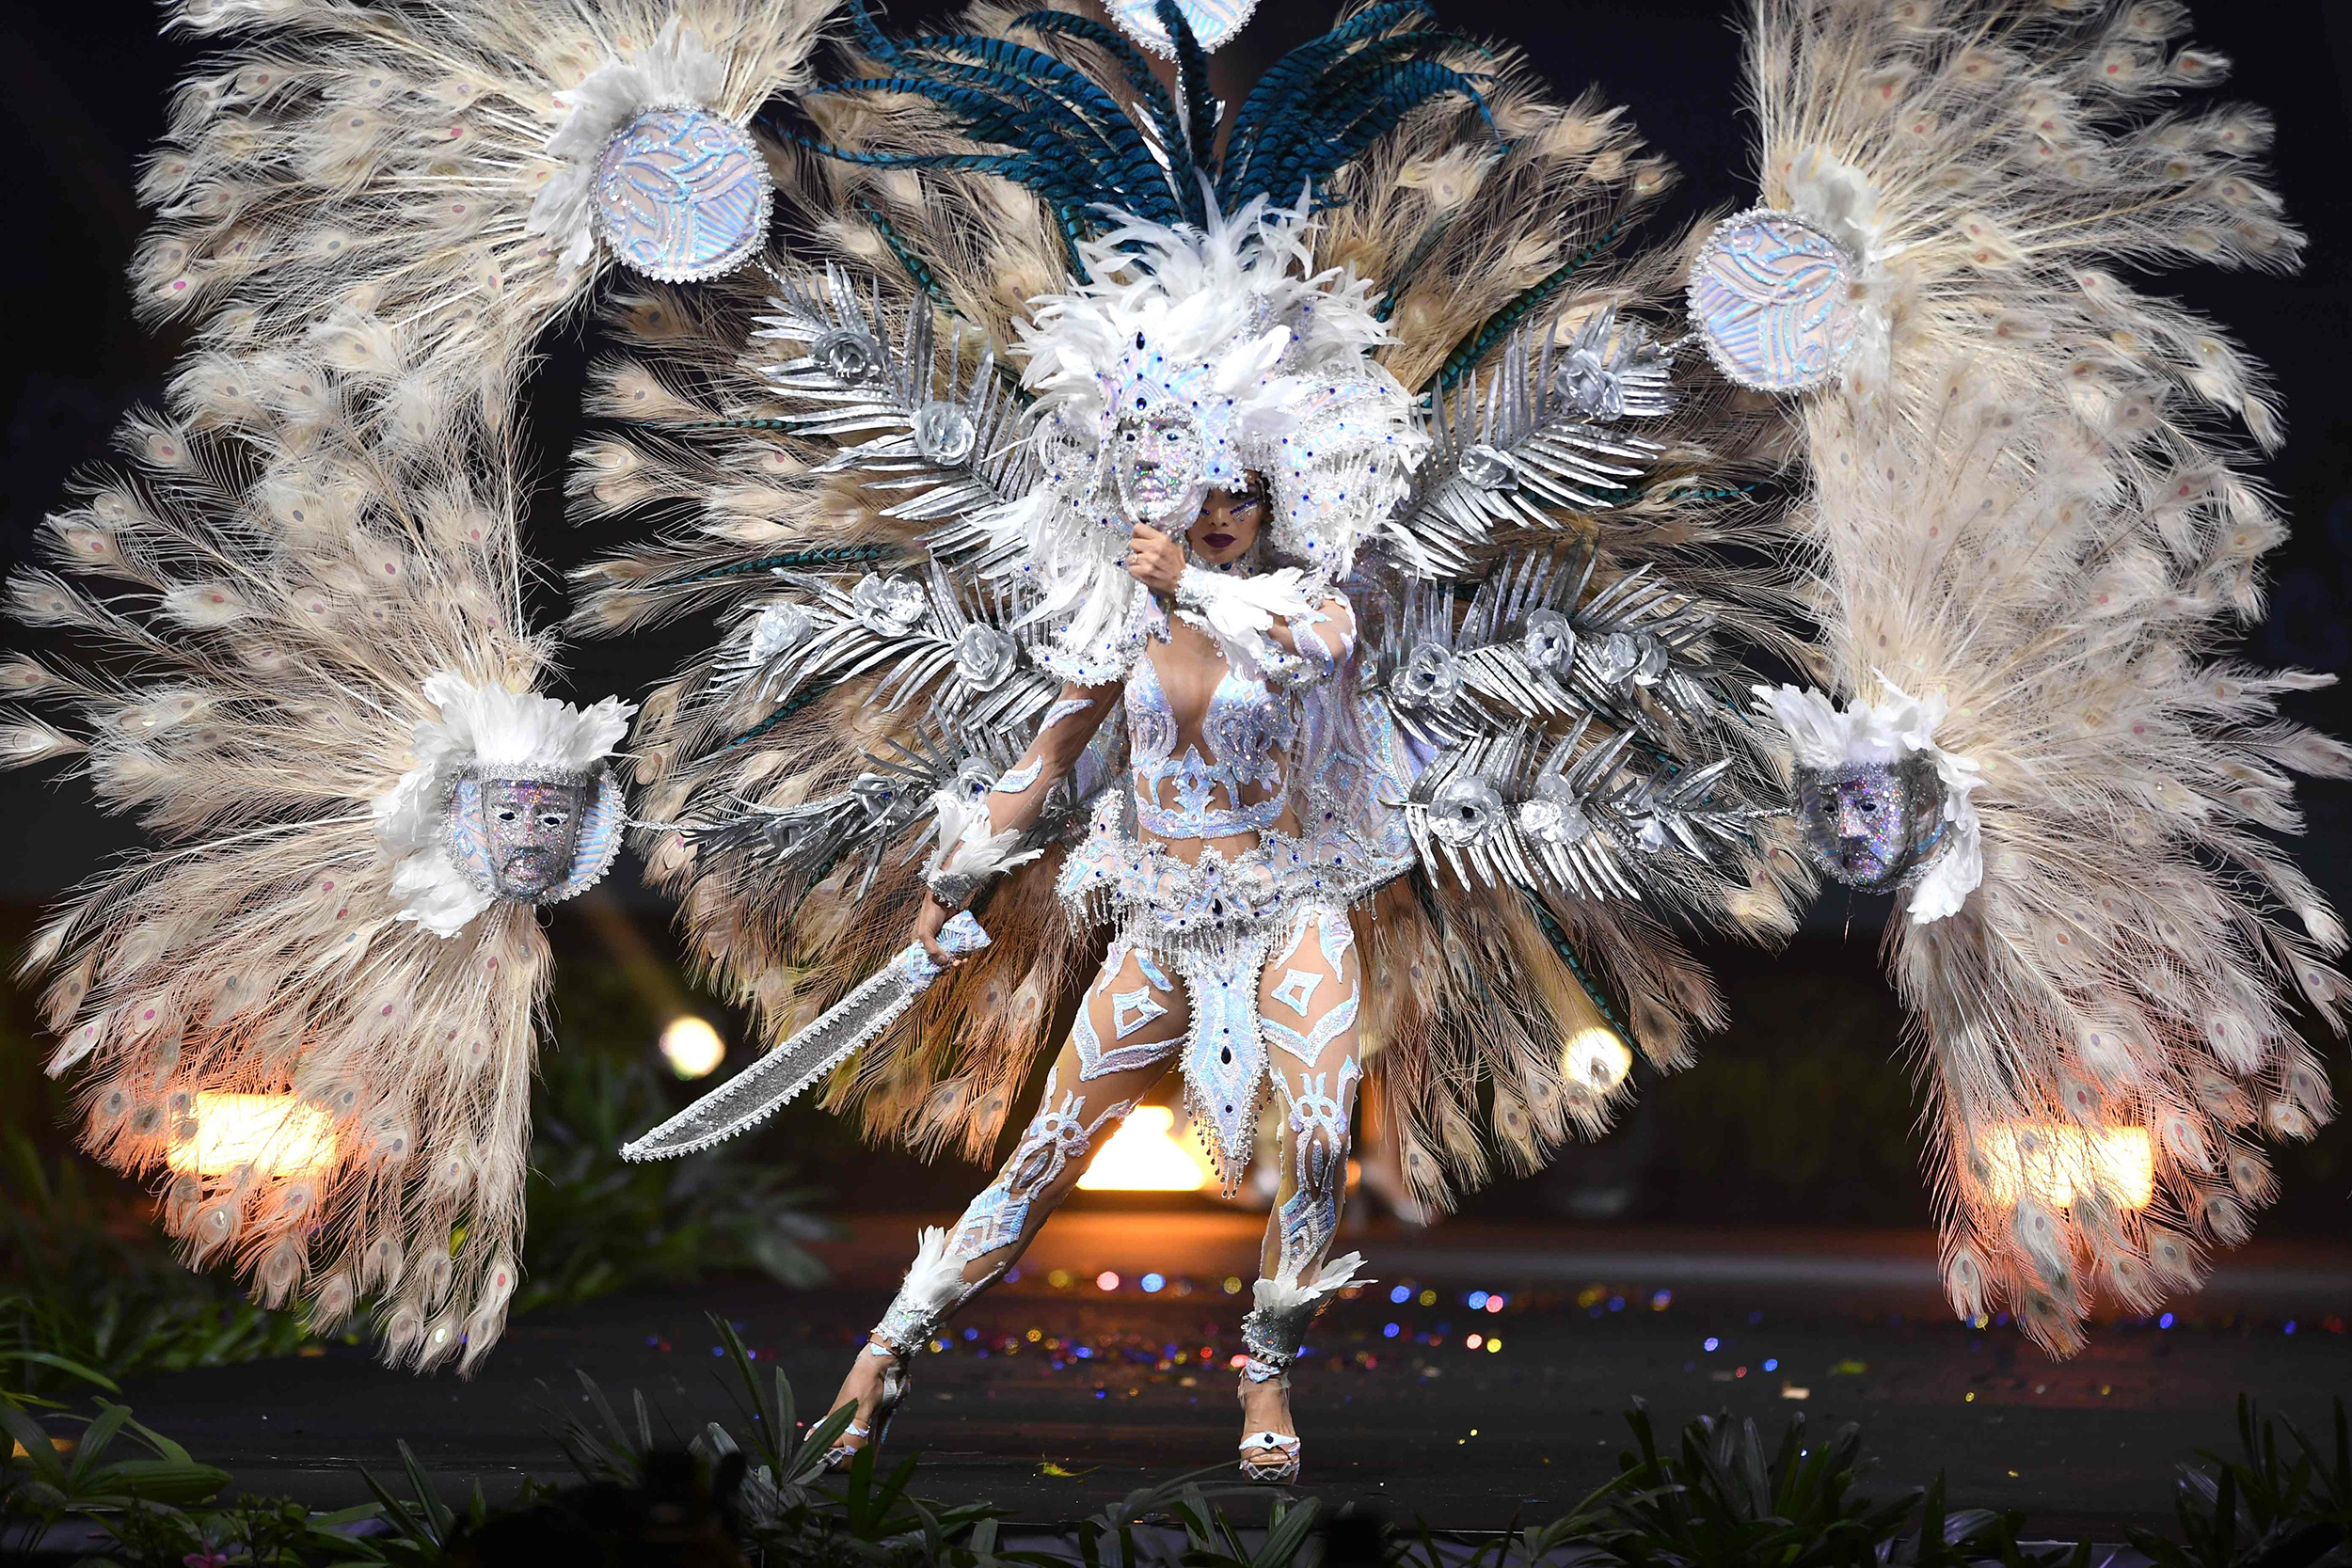 The Daily Universe Halloween Costume Contest 2020 Miss Universe is the only major beauty pageant worth watching